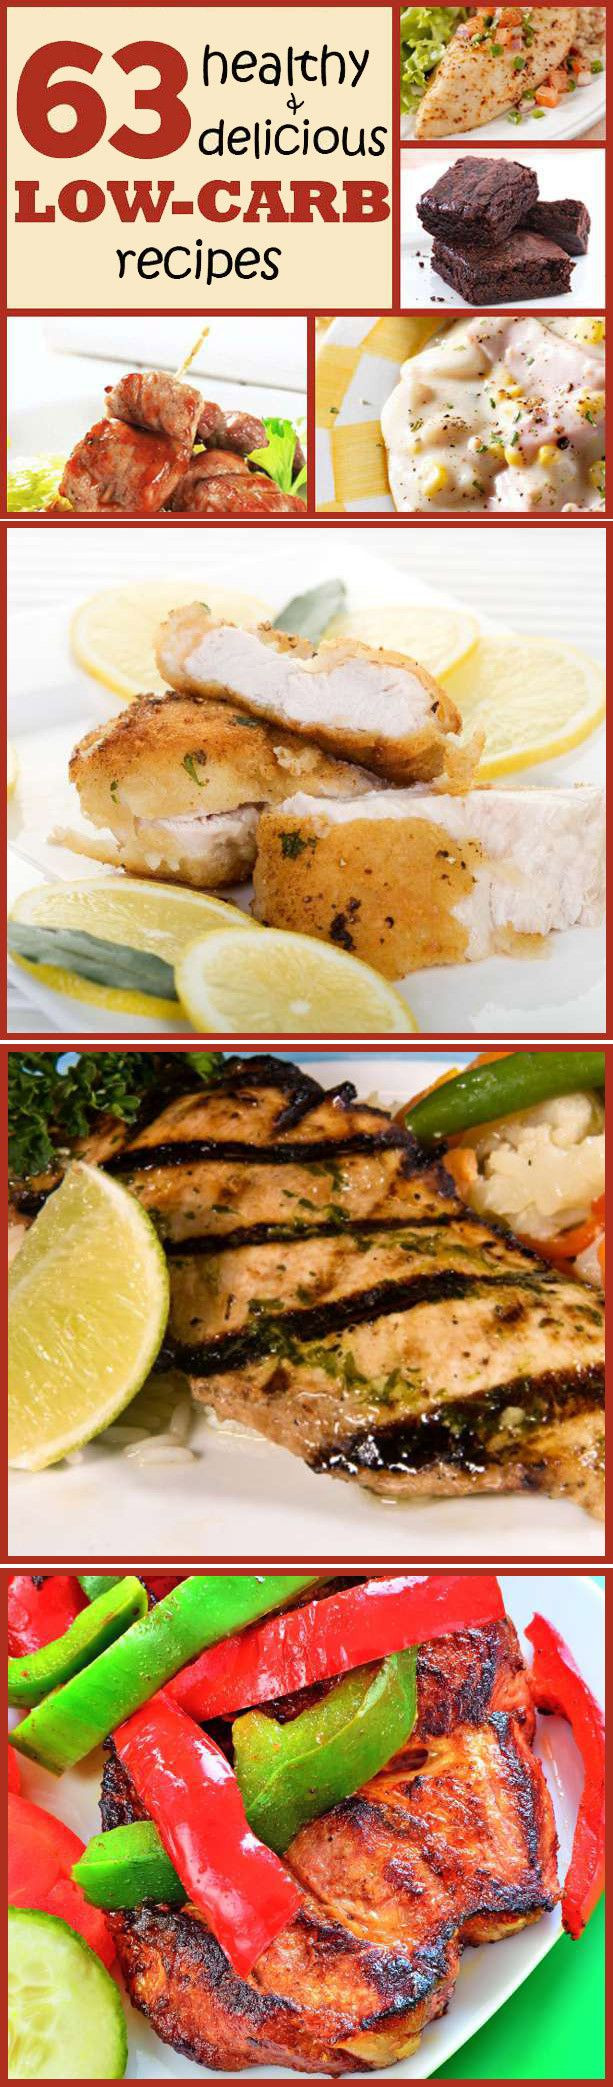 101 Healthy Low Carb Recipes  101 best images about Atkins Diet recipes on Pinterest